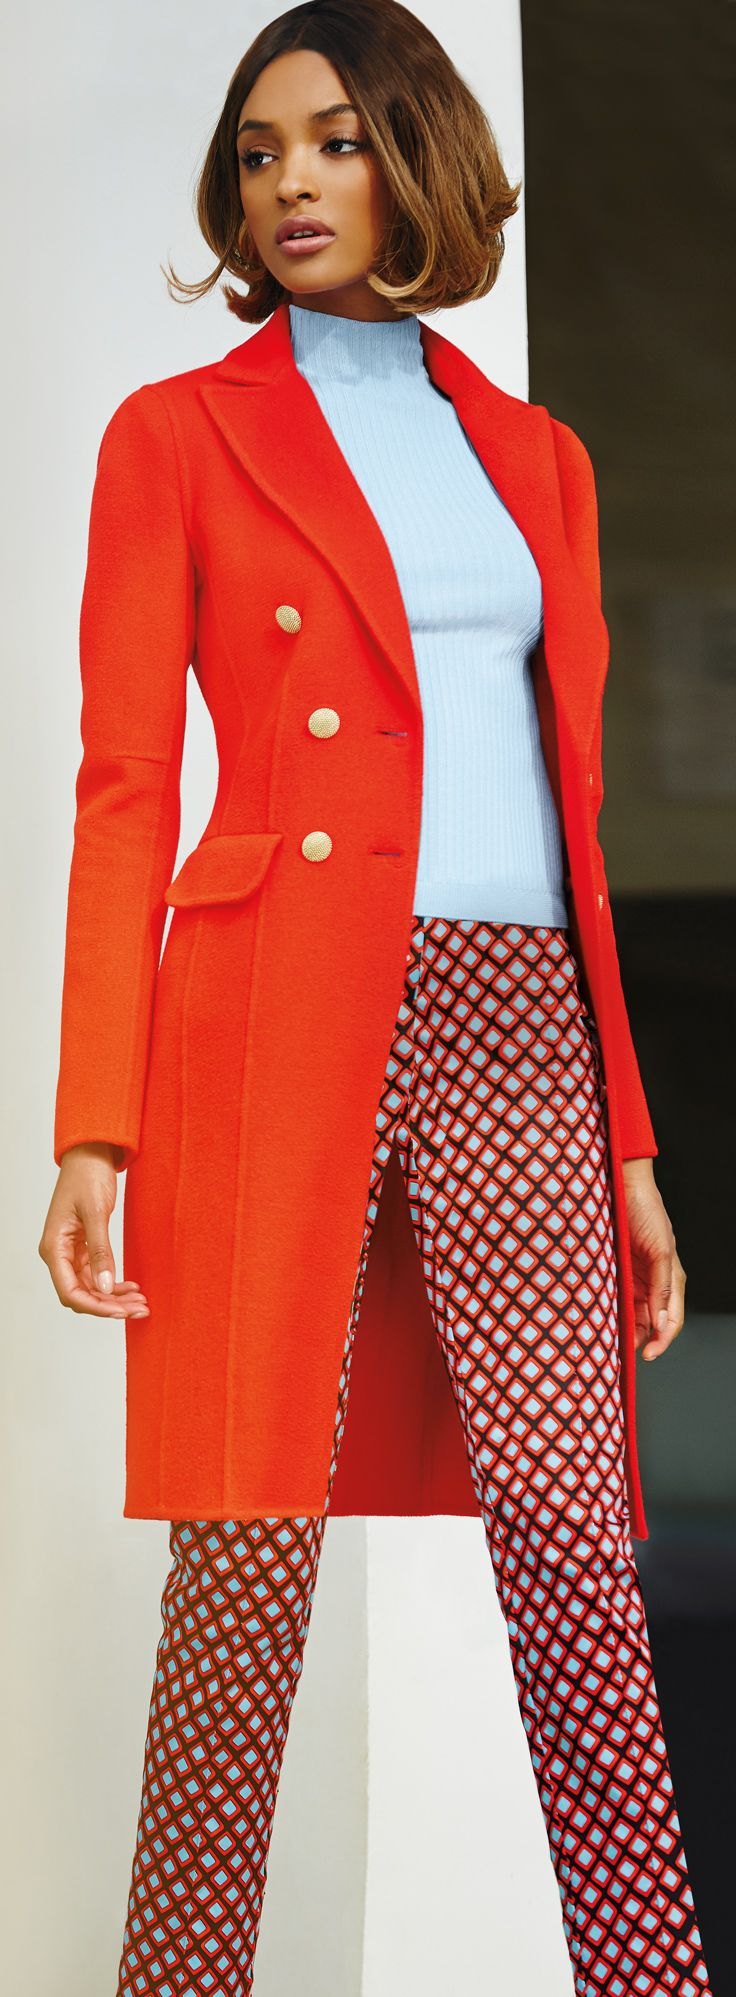 The StJohnKnits double breasted red cashmere coat is the perfect transitional outfit | sjk.com